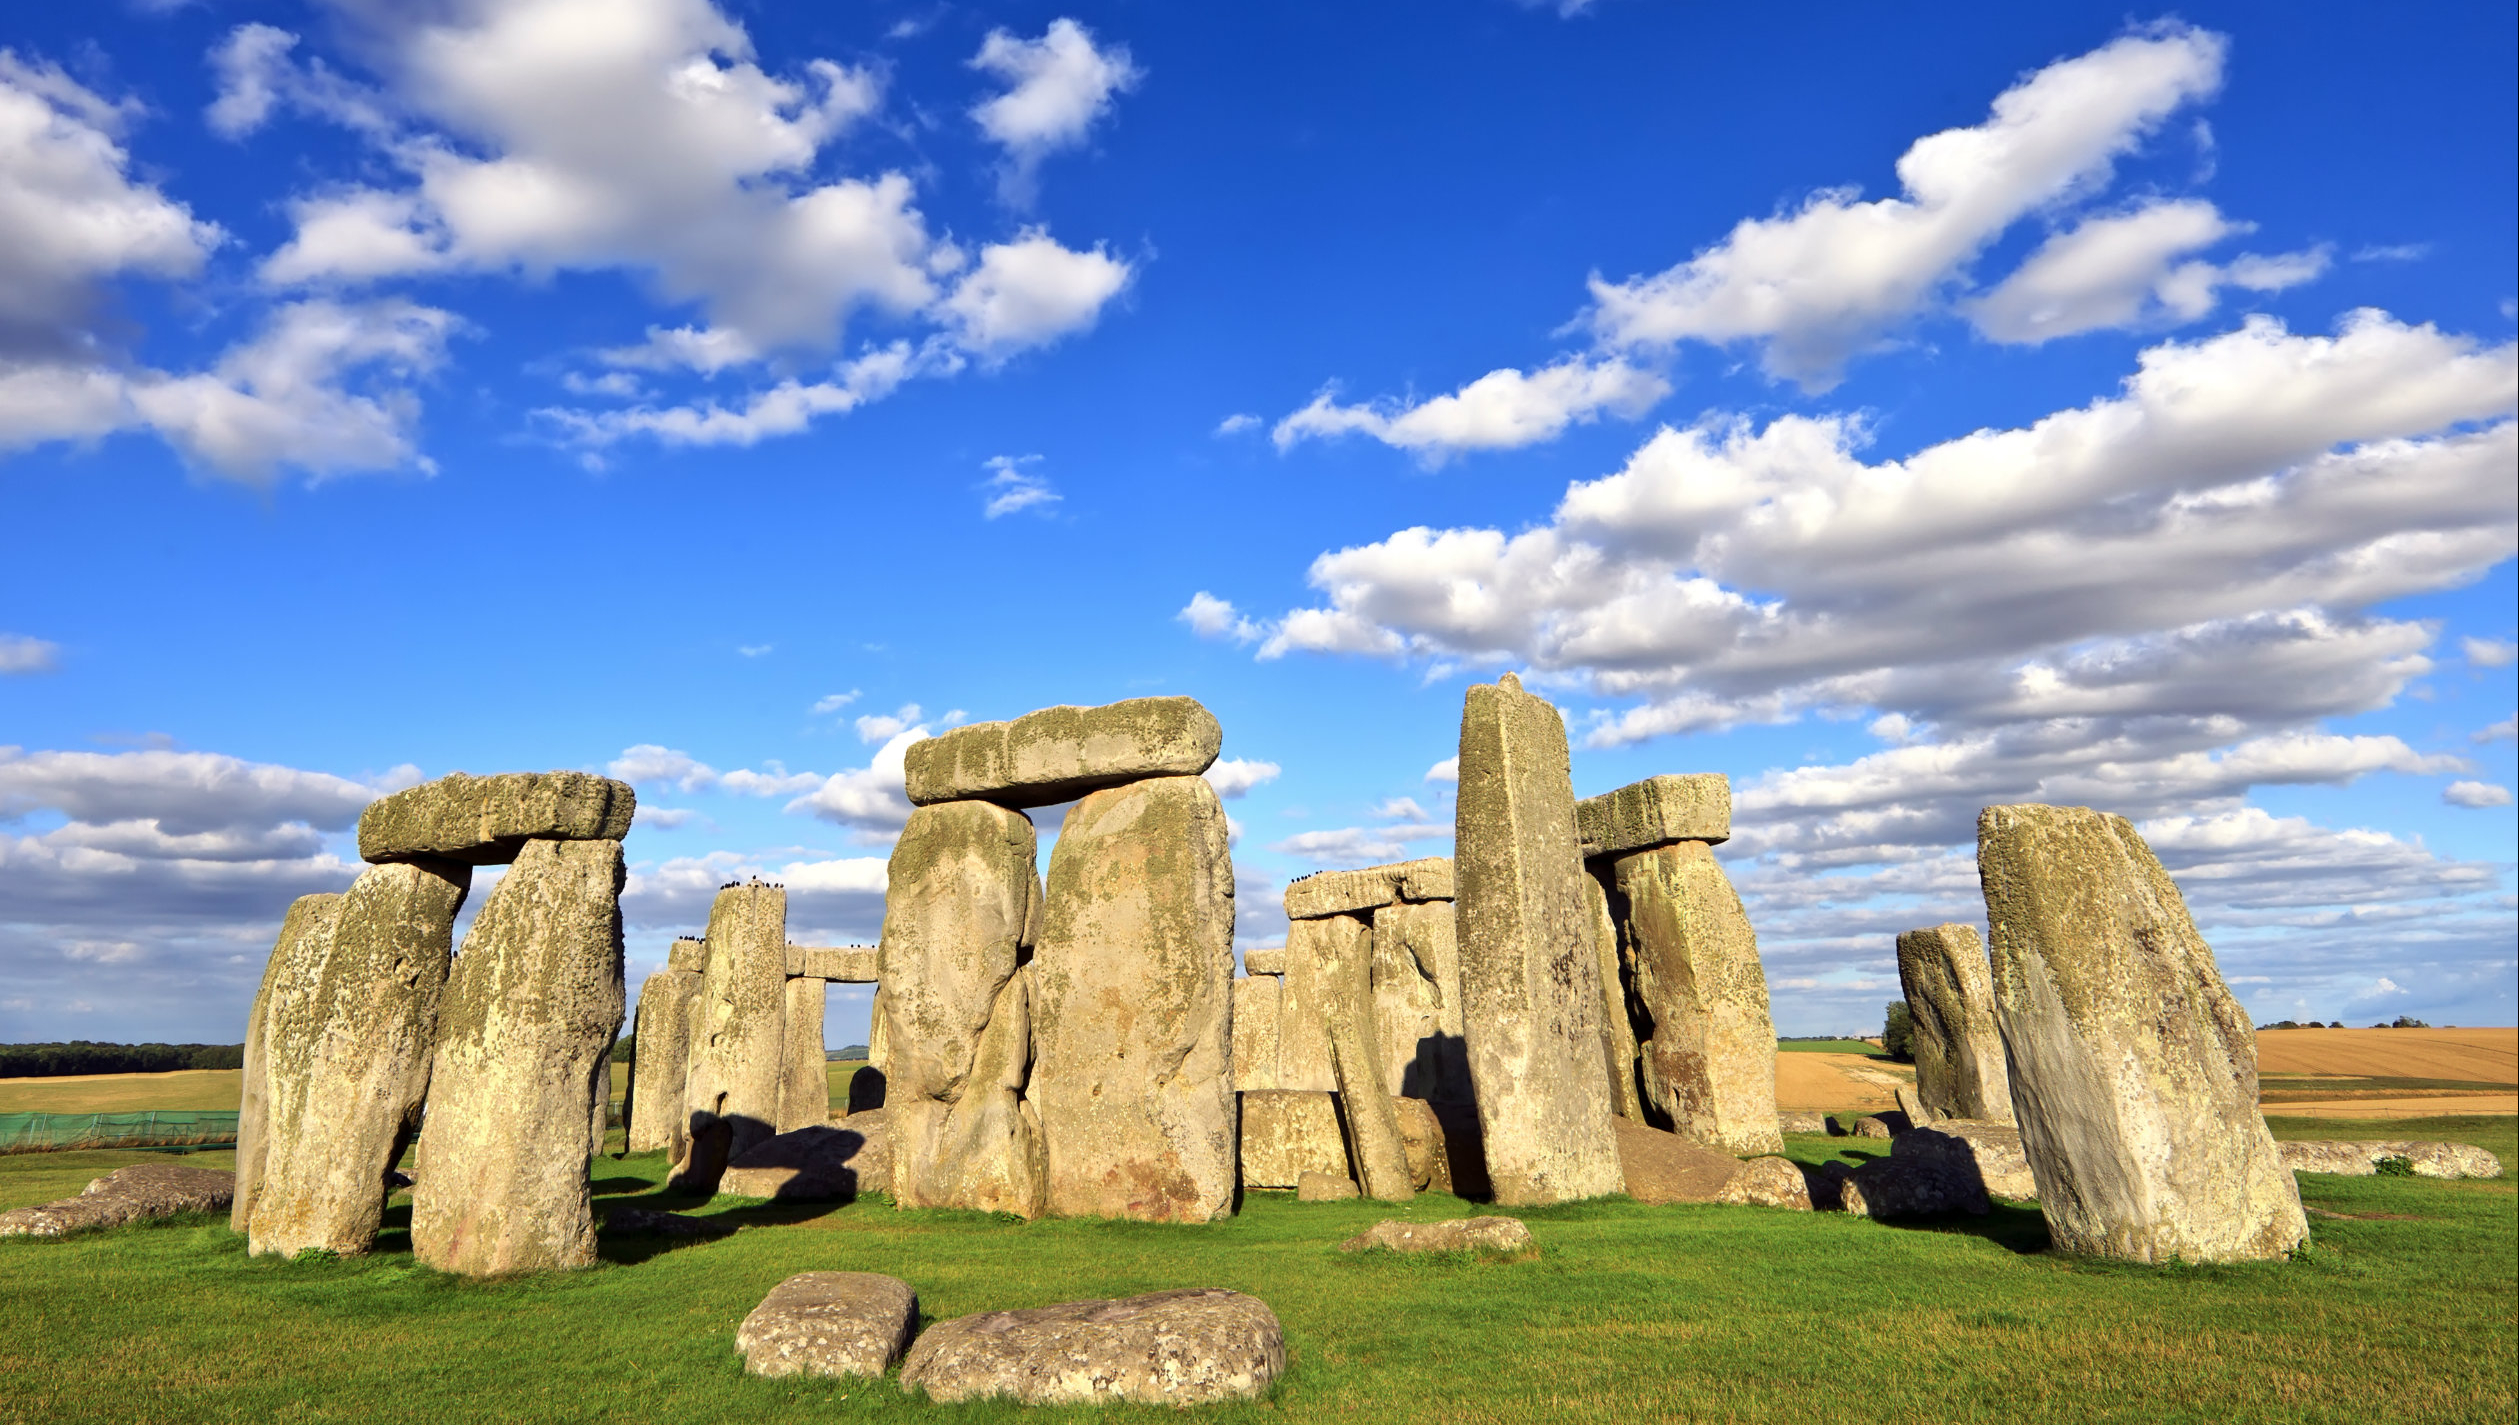 View of the Stonehenge on a sunny day